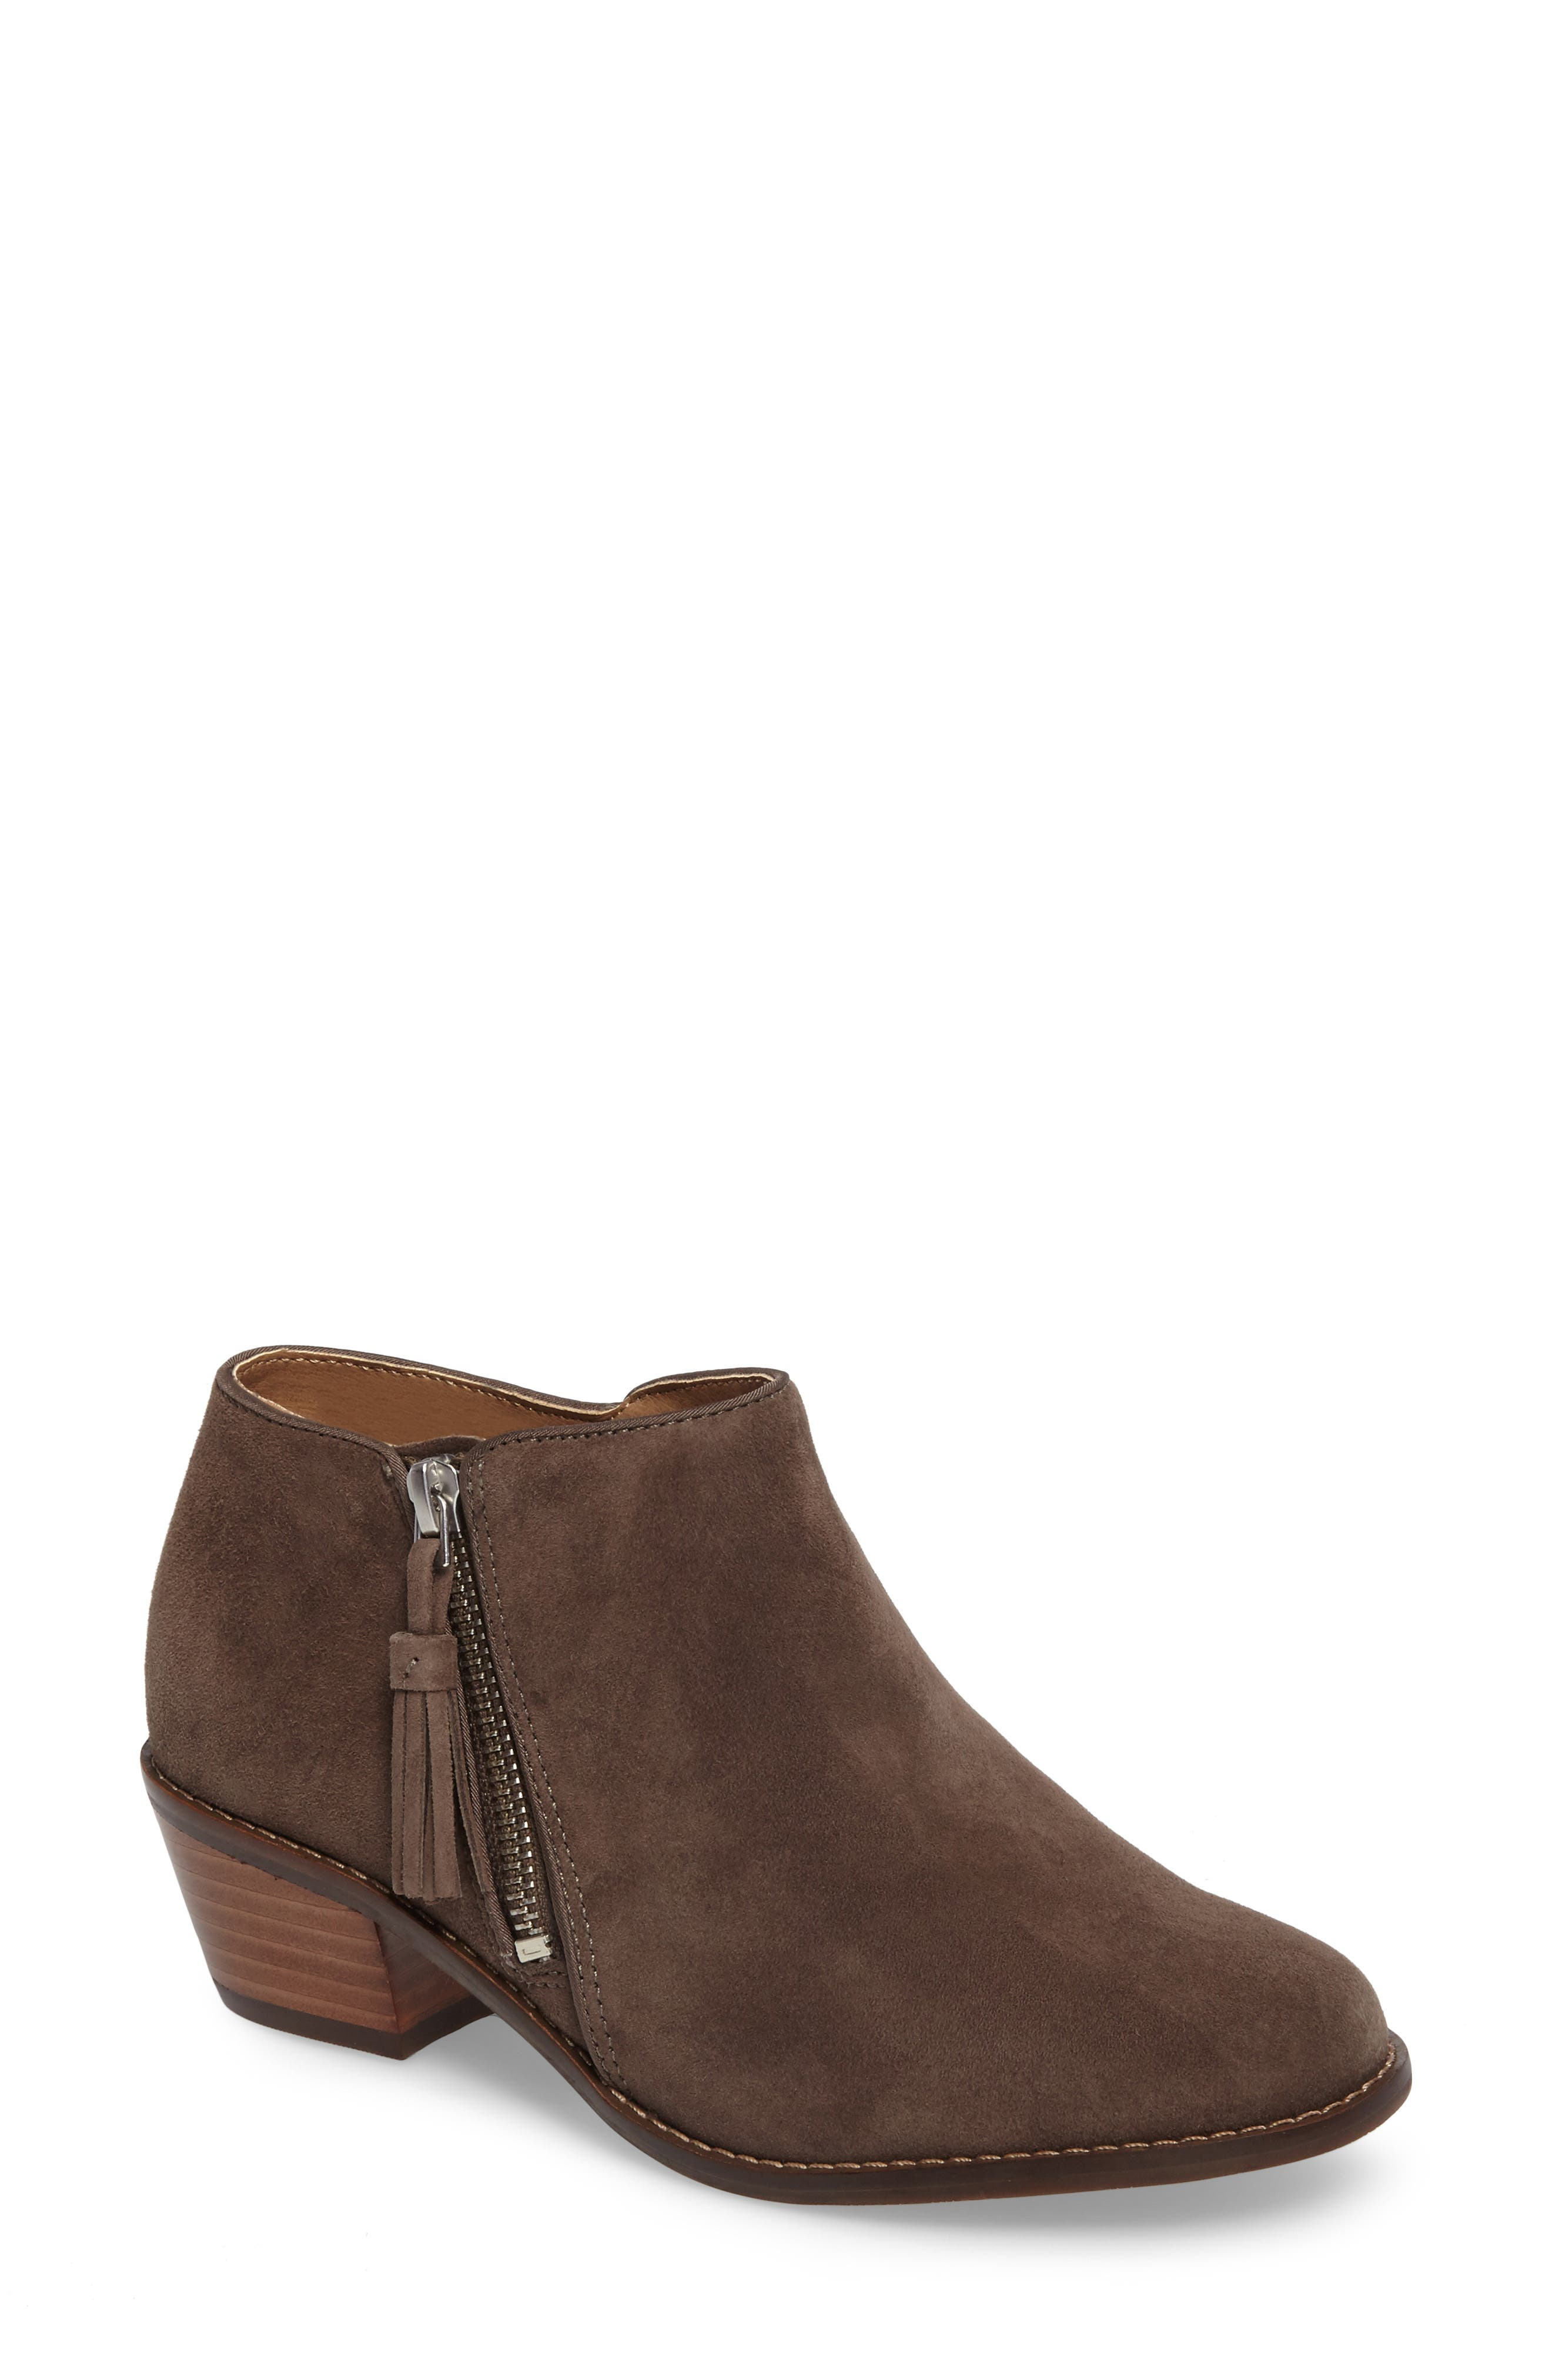 Vionic Serena Ankle Boot, Grey